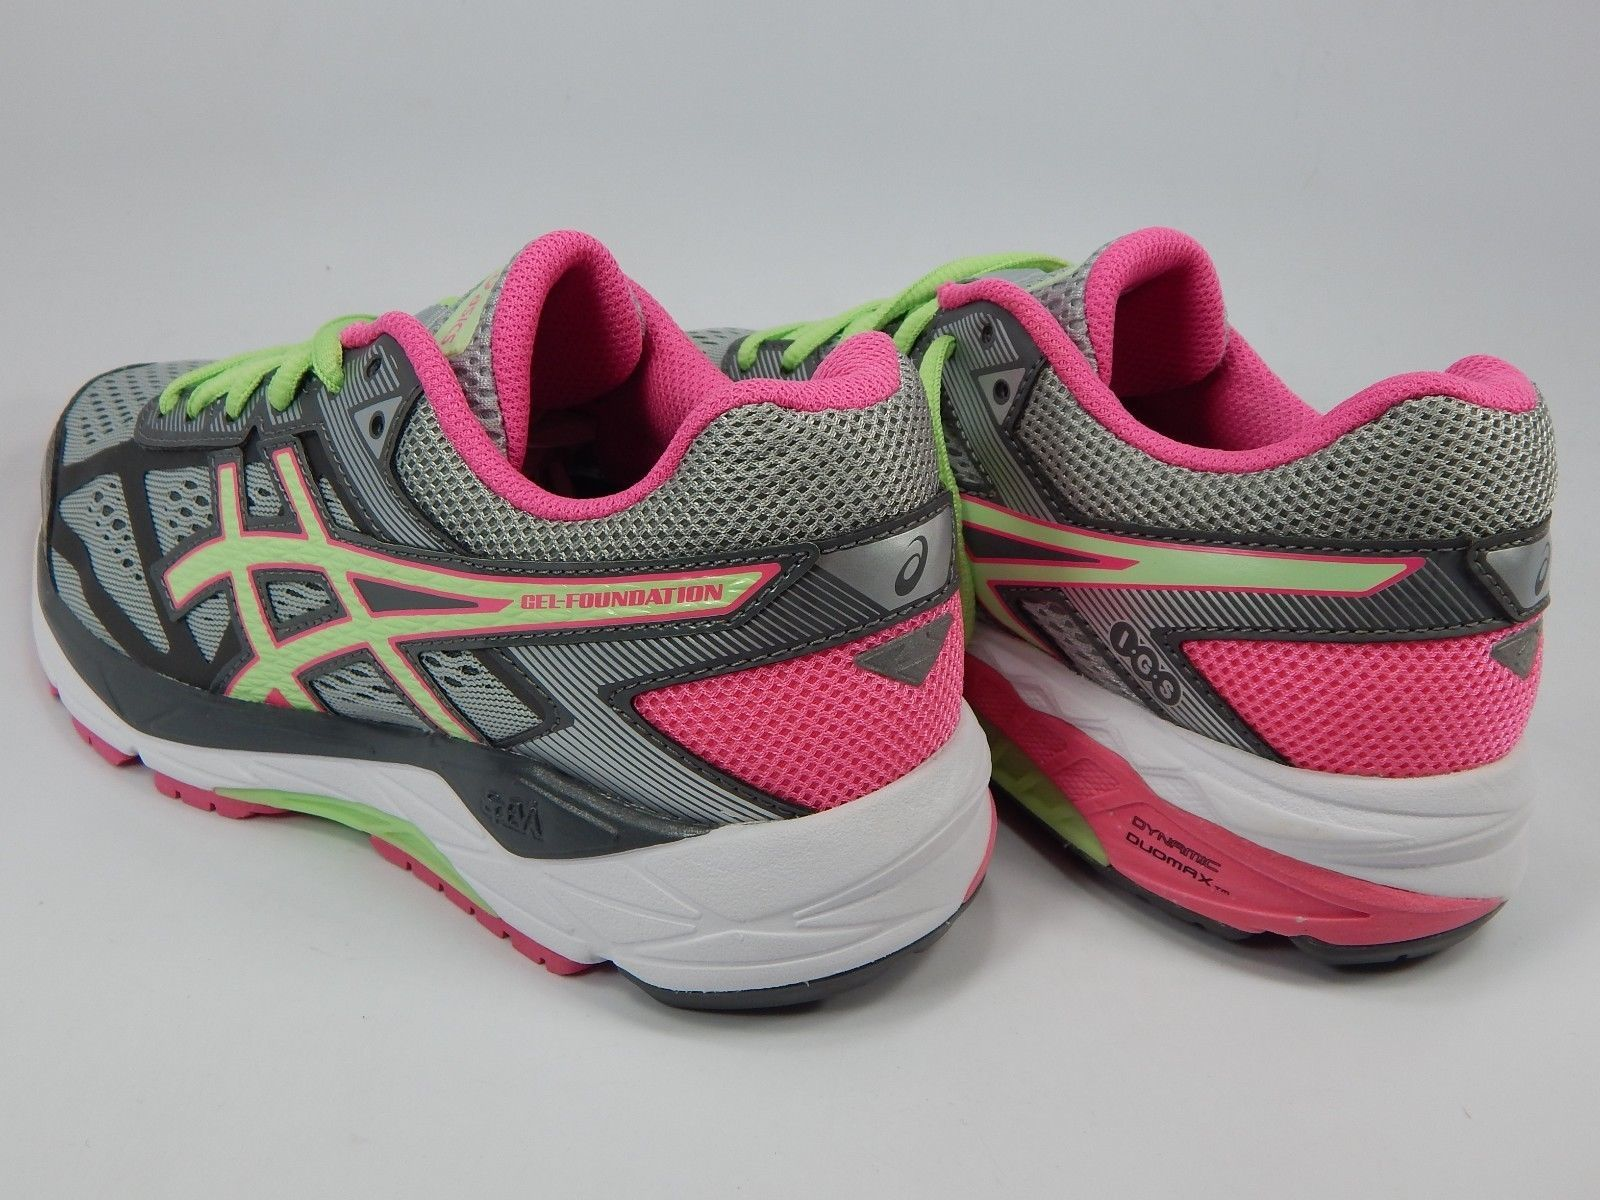 Asics Gel Foundation 12 Size US 6 M (B) EU 37 Women's Running Shoes Gray T5H5N